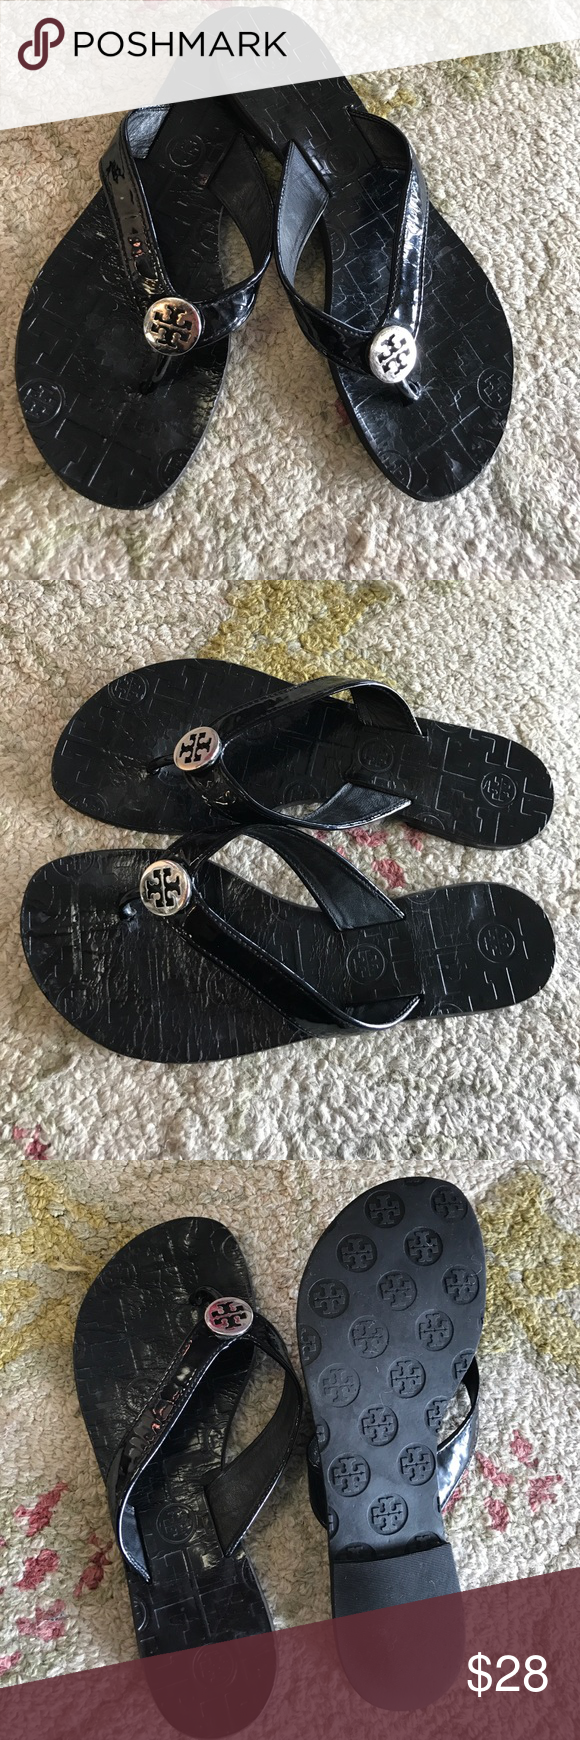 Tory Burch flats In very used condition. That's why the low price Tory Burch Shoes Flats & Loafers